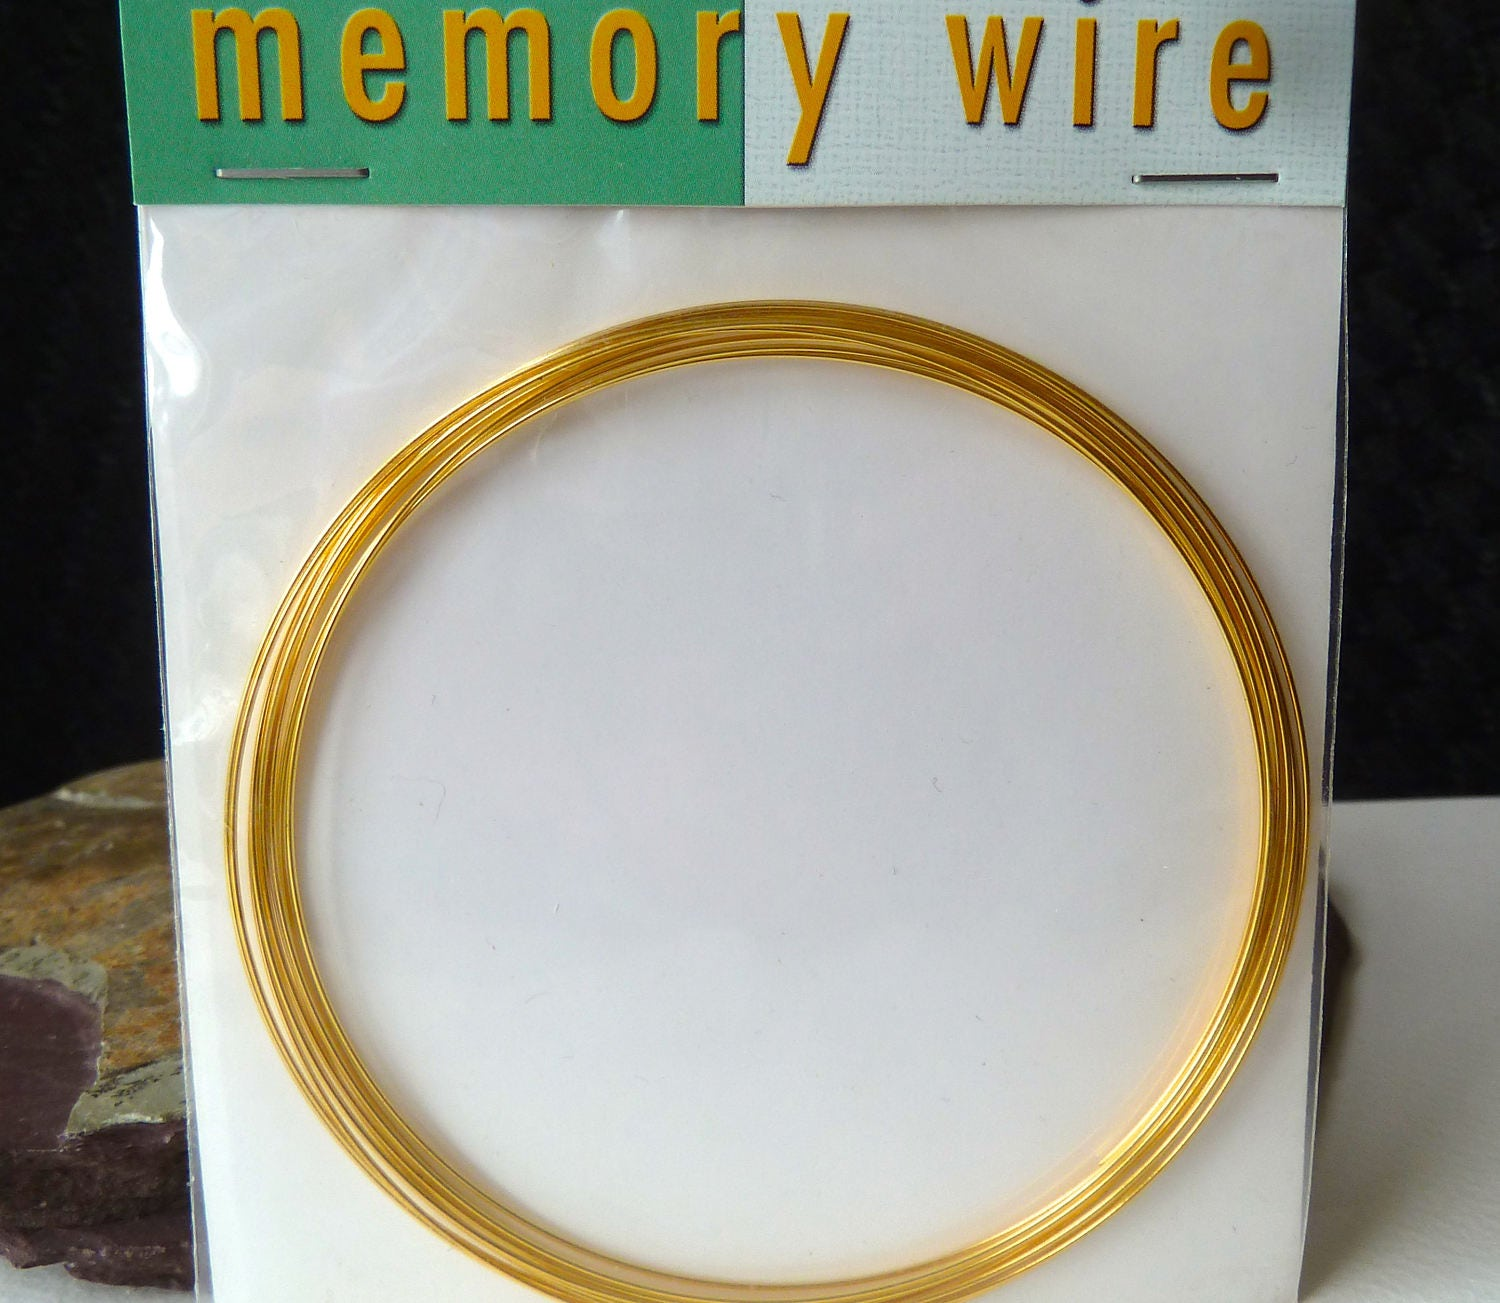 Necklace Memory Wire - Gold Plated Memory Wire - 3.6 Inch Diameter ...